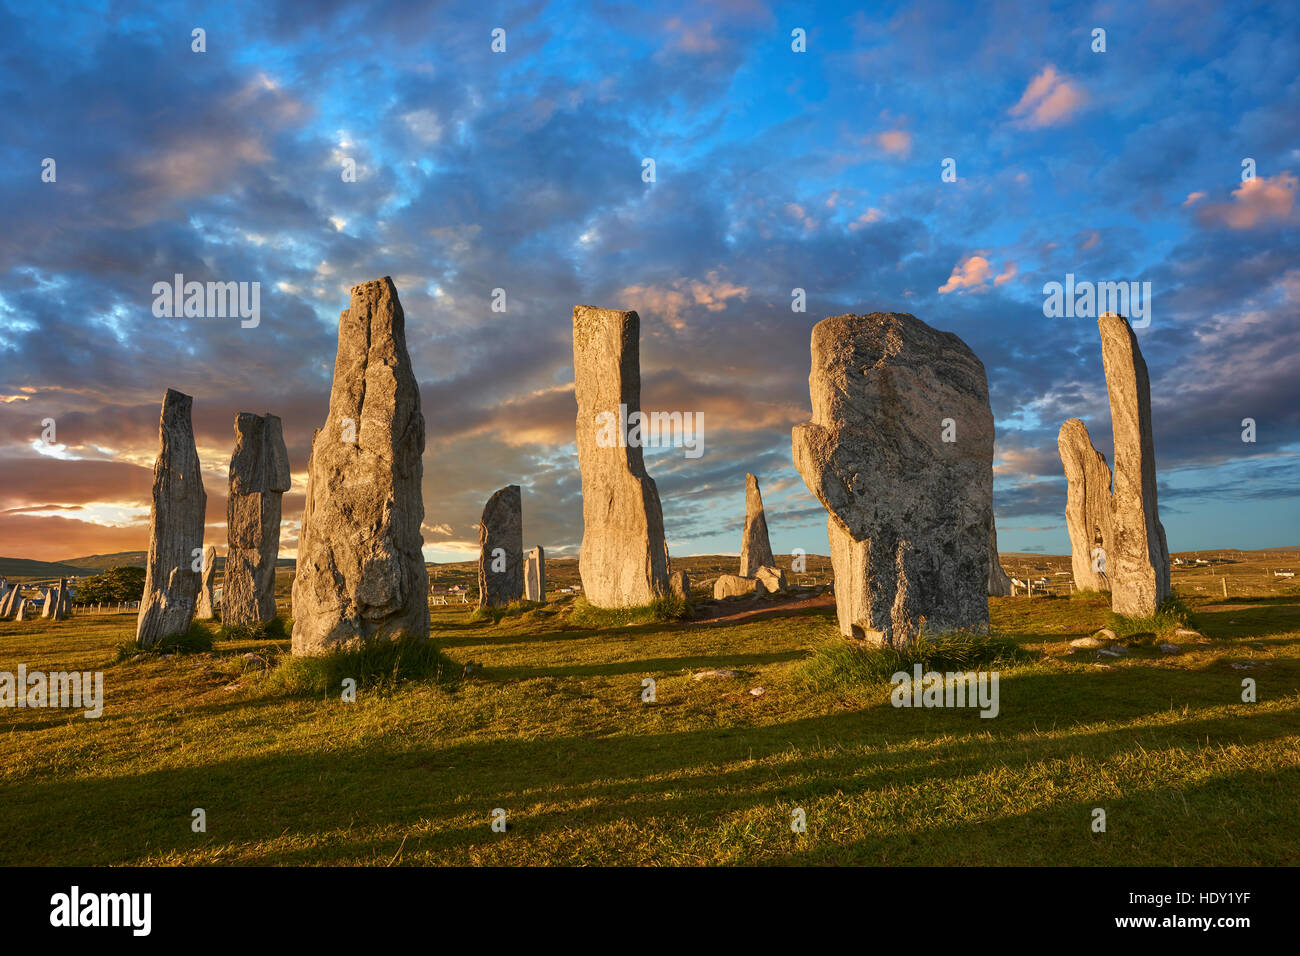 Calanais Standing Stones  central stone circle erected between 2900-2600BC, Isle of Lewis Scotland Stock Photo